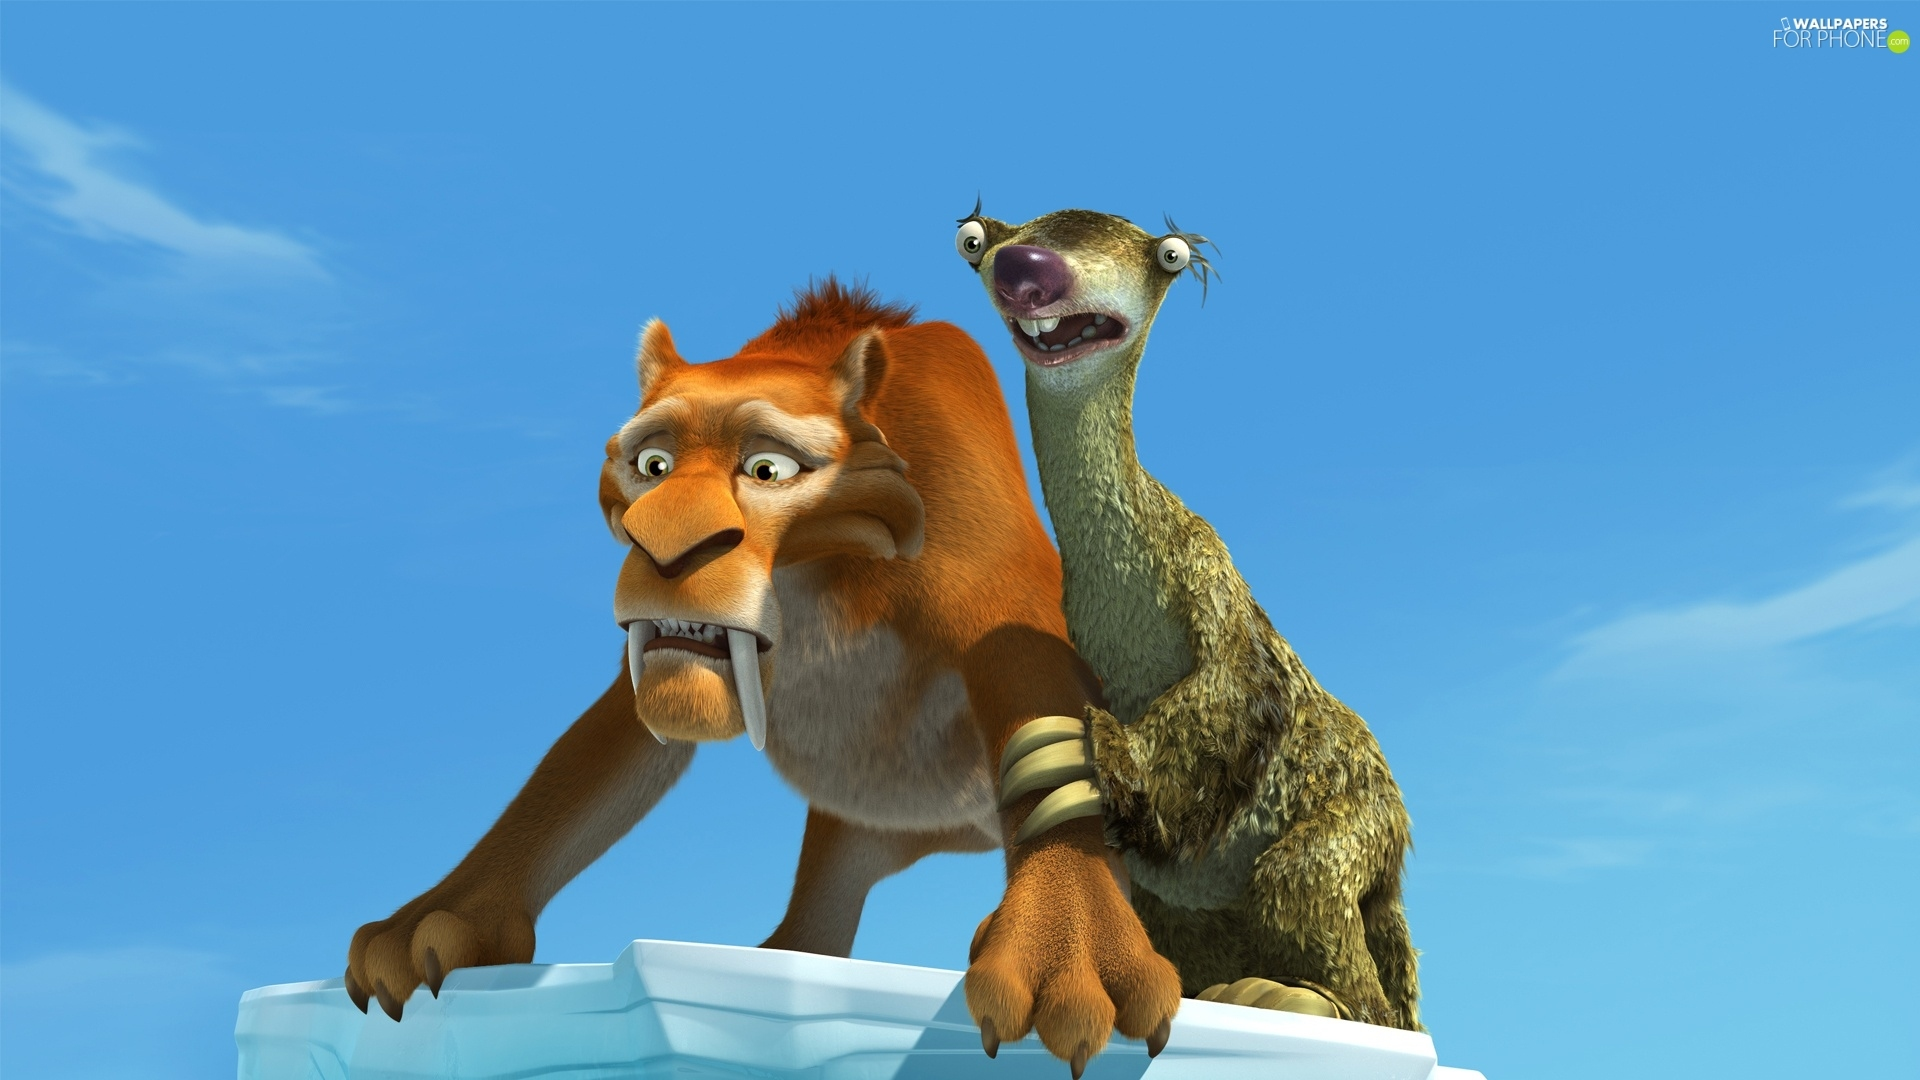 Ice Age, tiger, sloth, Ice Age